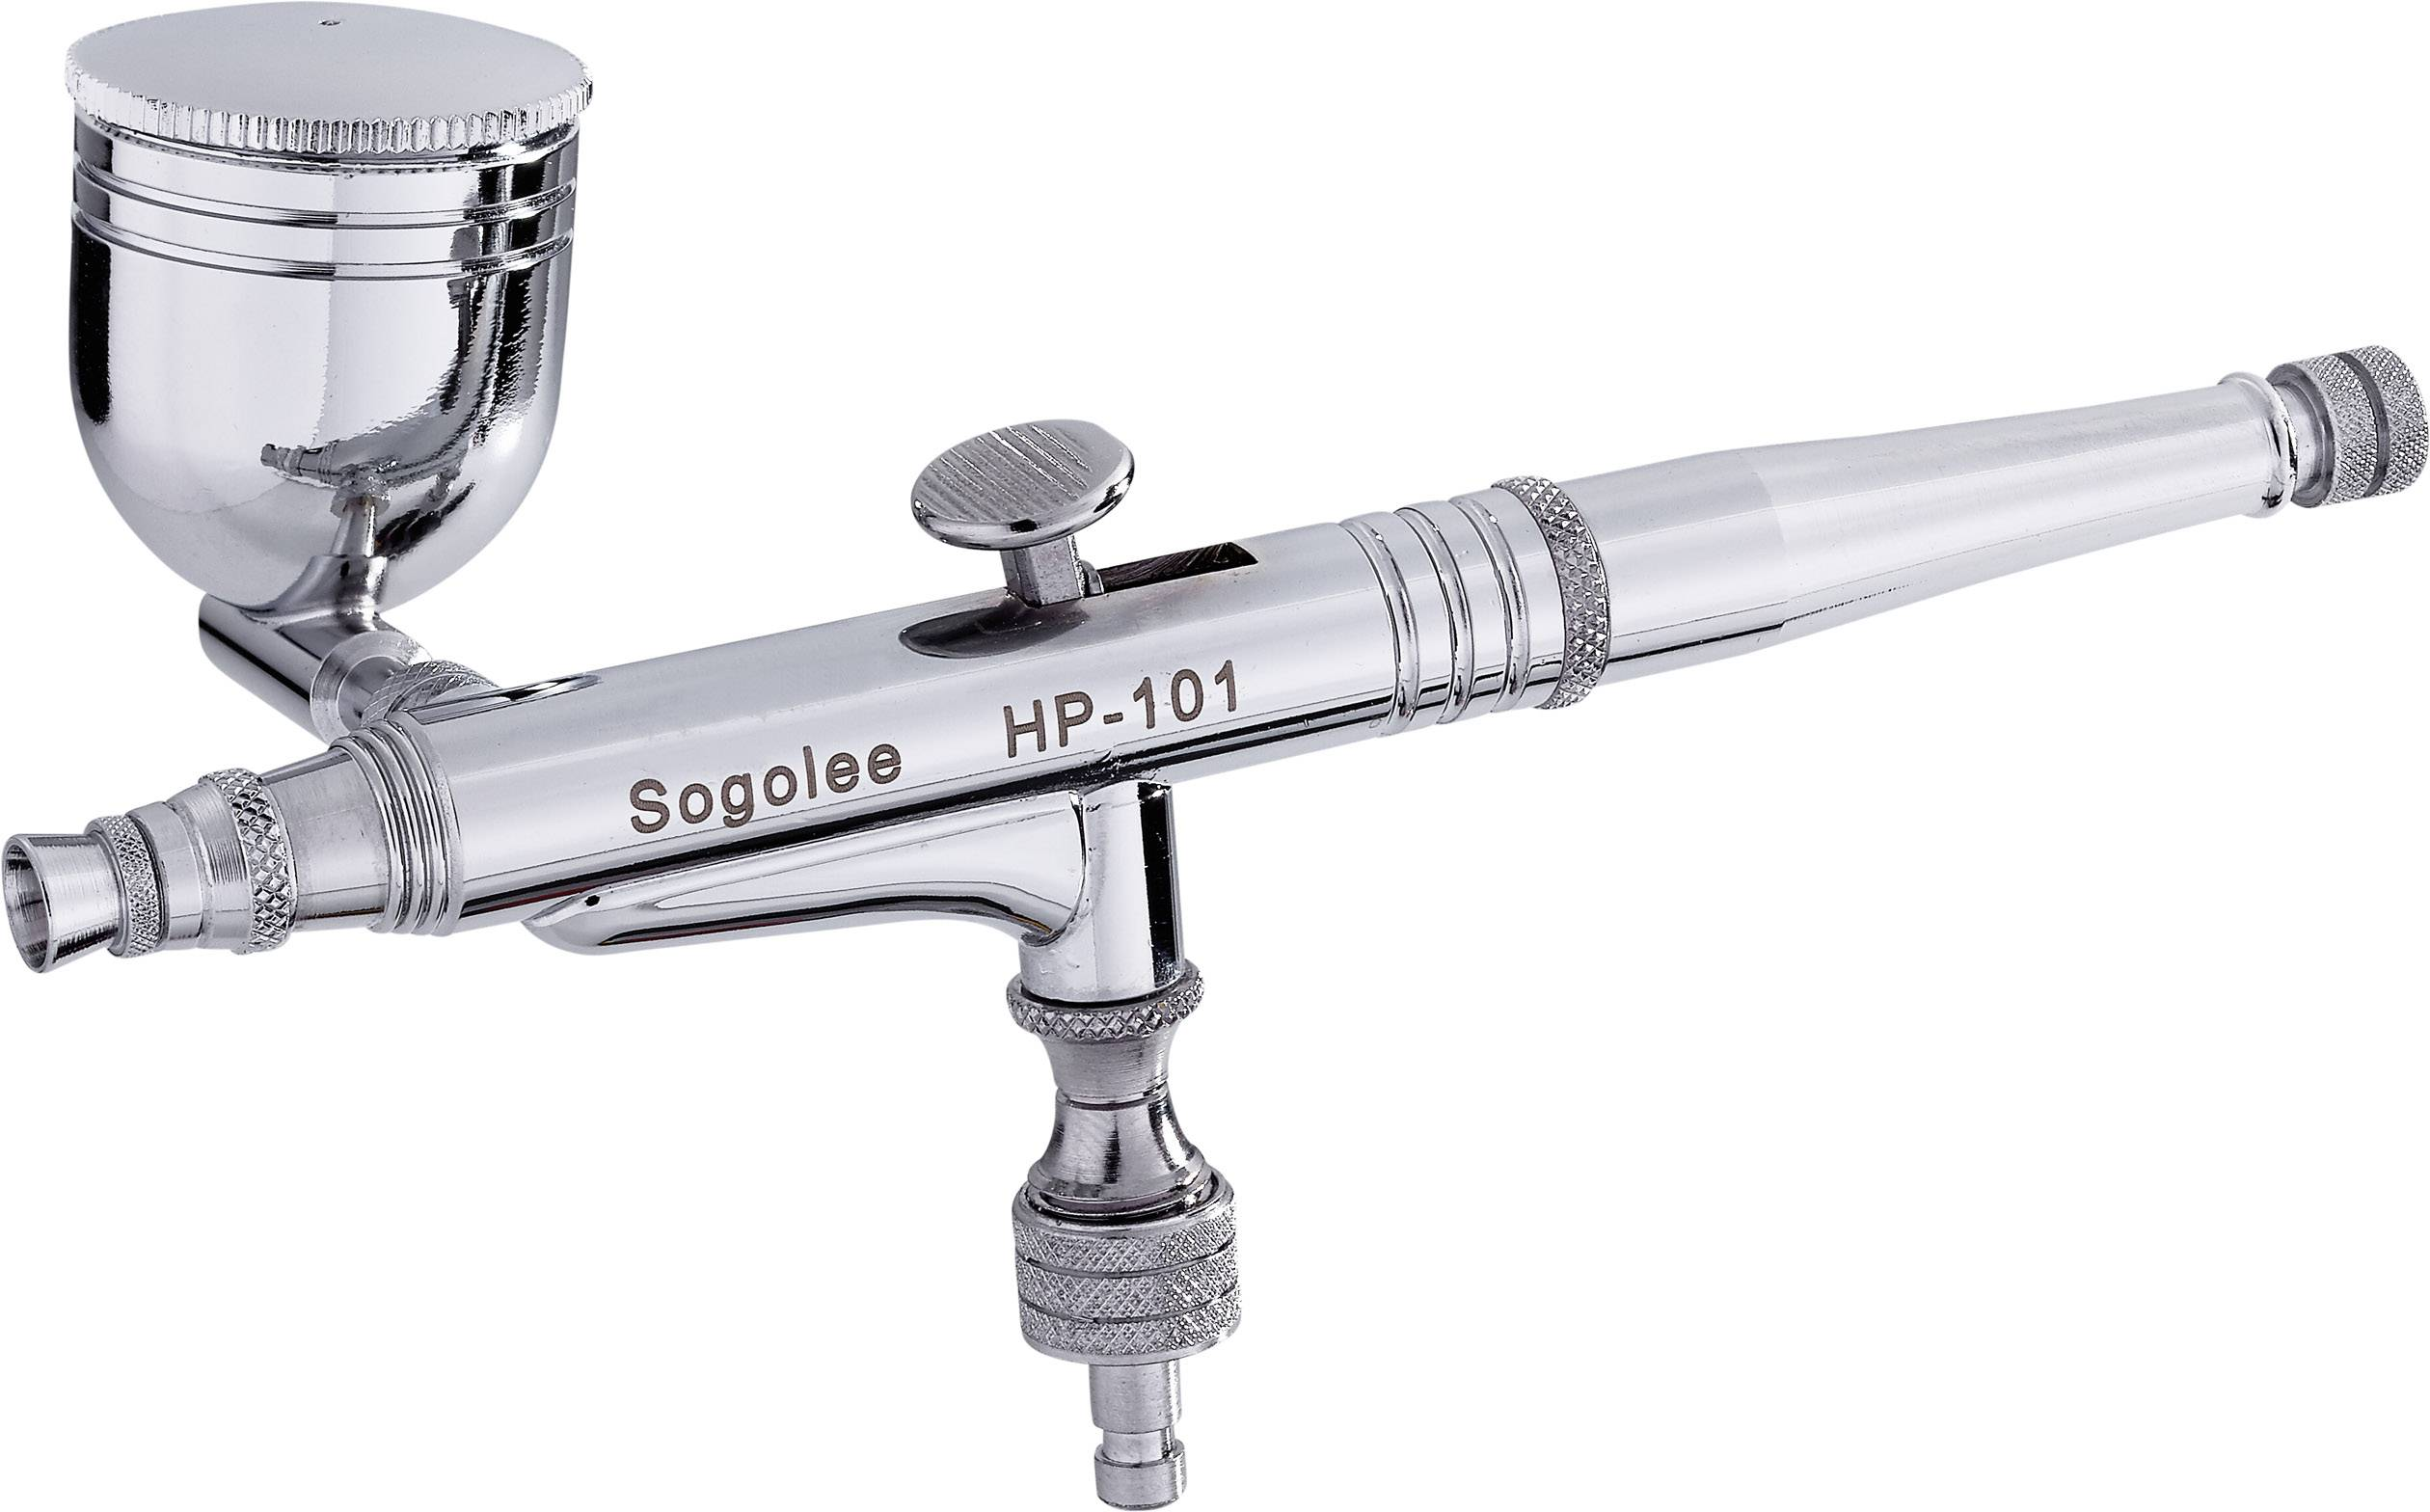 Airbrush pistole HP-101 Double action, tryska 0.3 mm, 7 ml